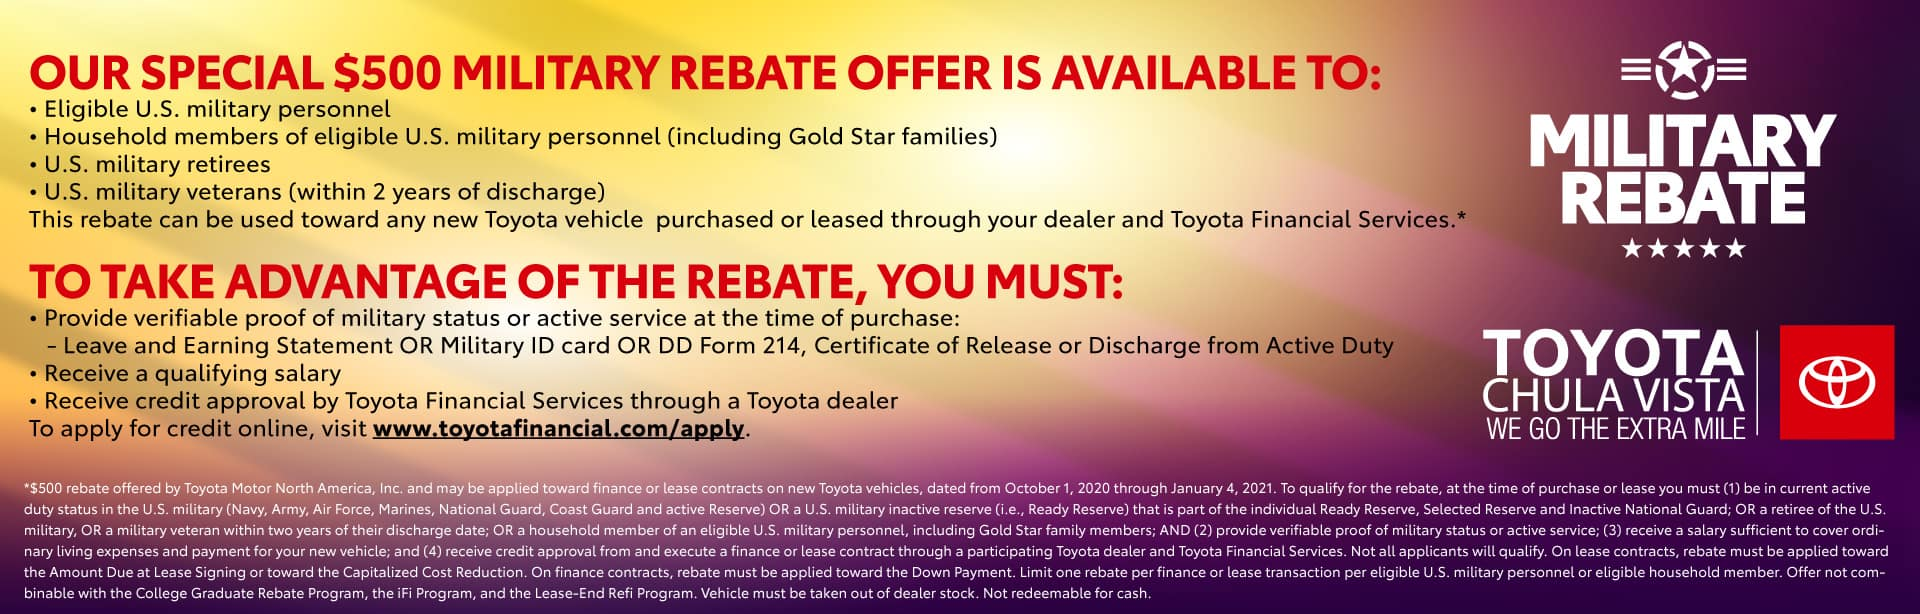 TCV_1920x614_Offers_Aug2_Military Rebate